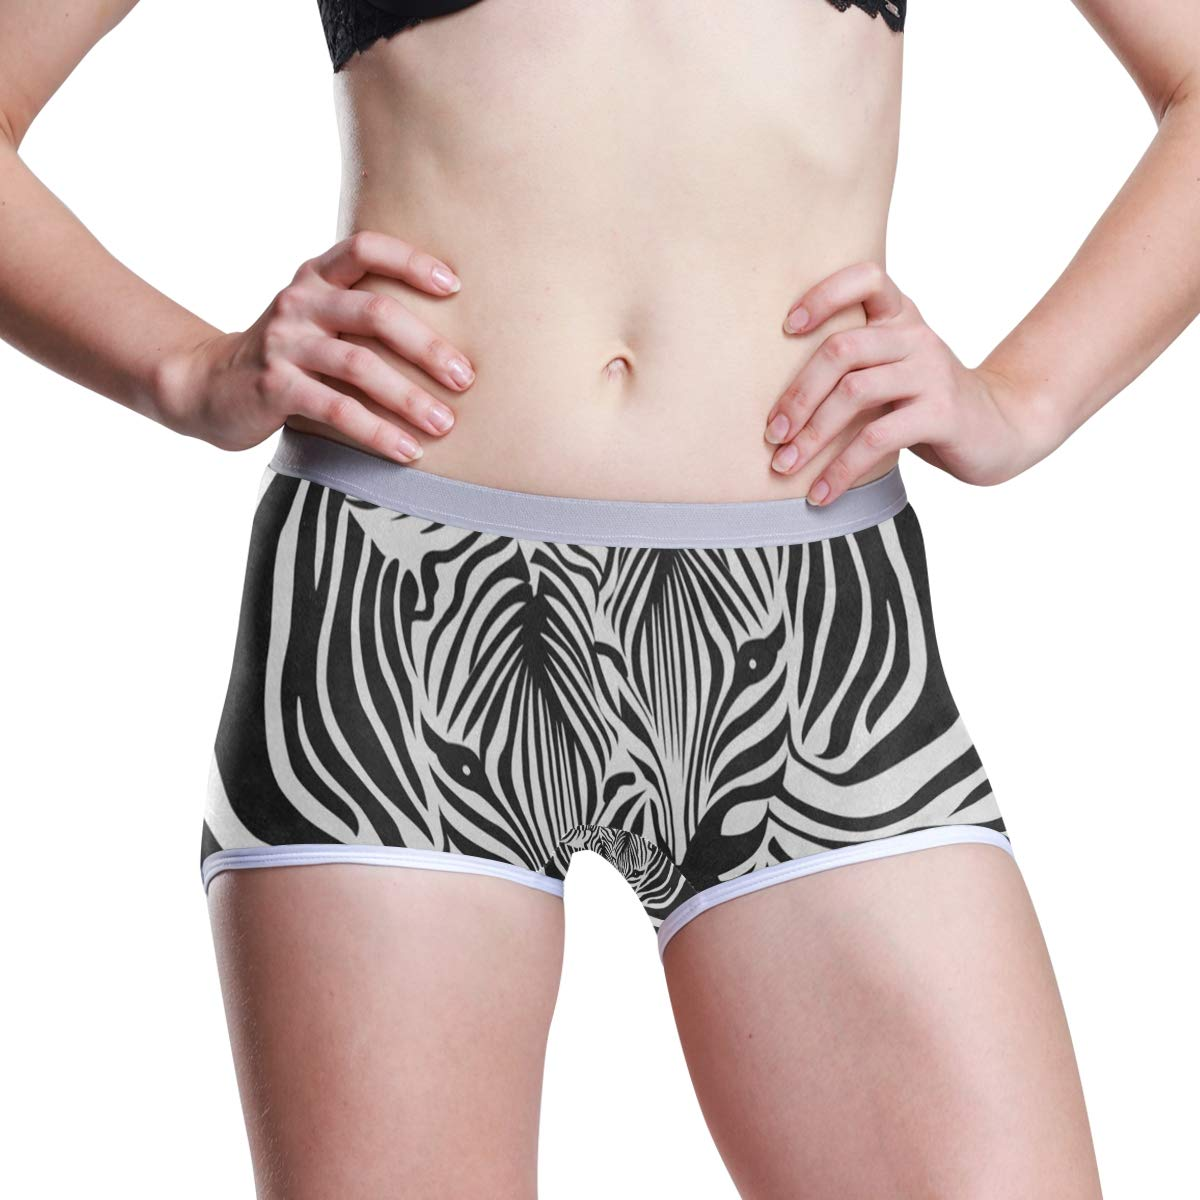 Womens Regular /& Plus Size Underwear,Funny White Polar Bear Stretch Boxer Briefs Boyshort Anti-Glare Panties for Girls